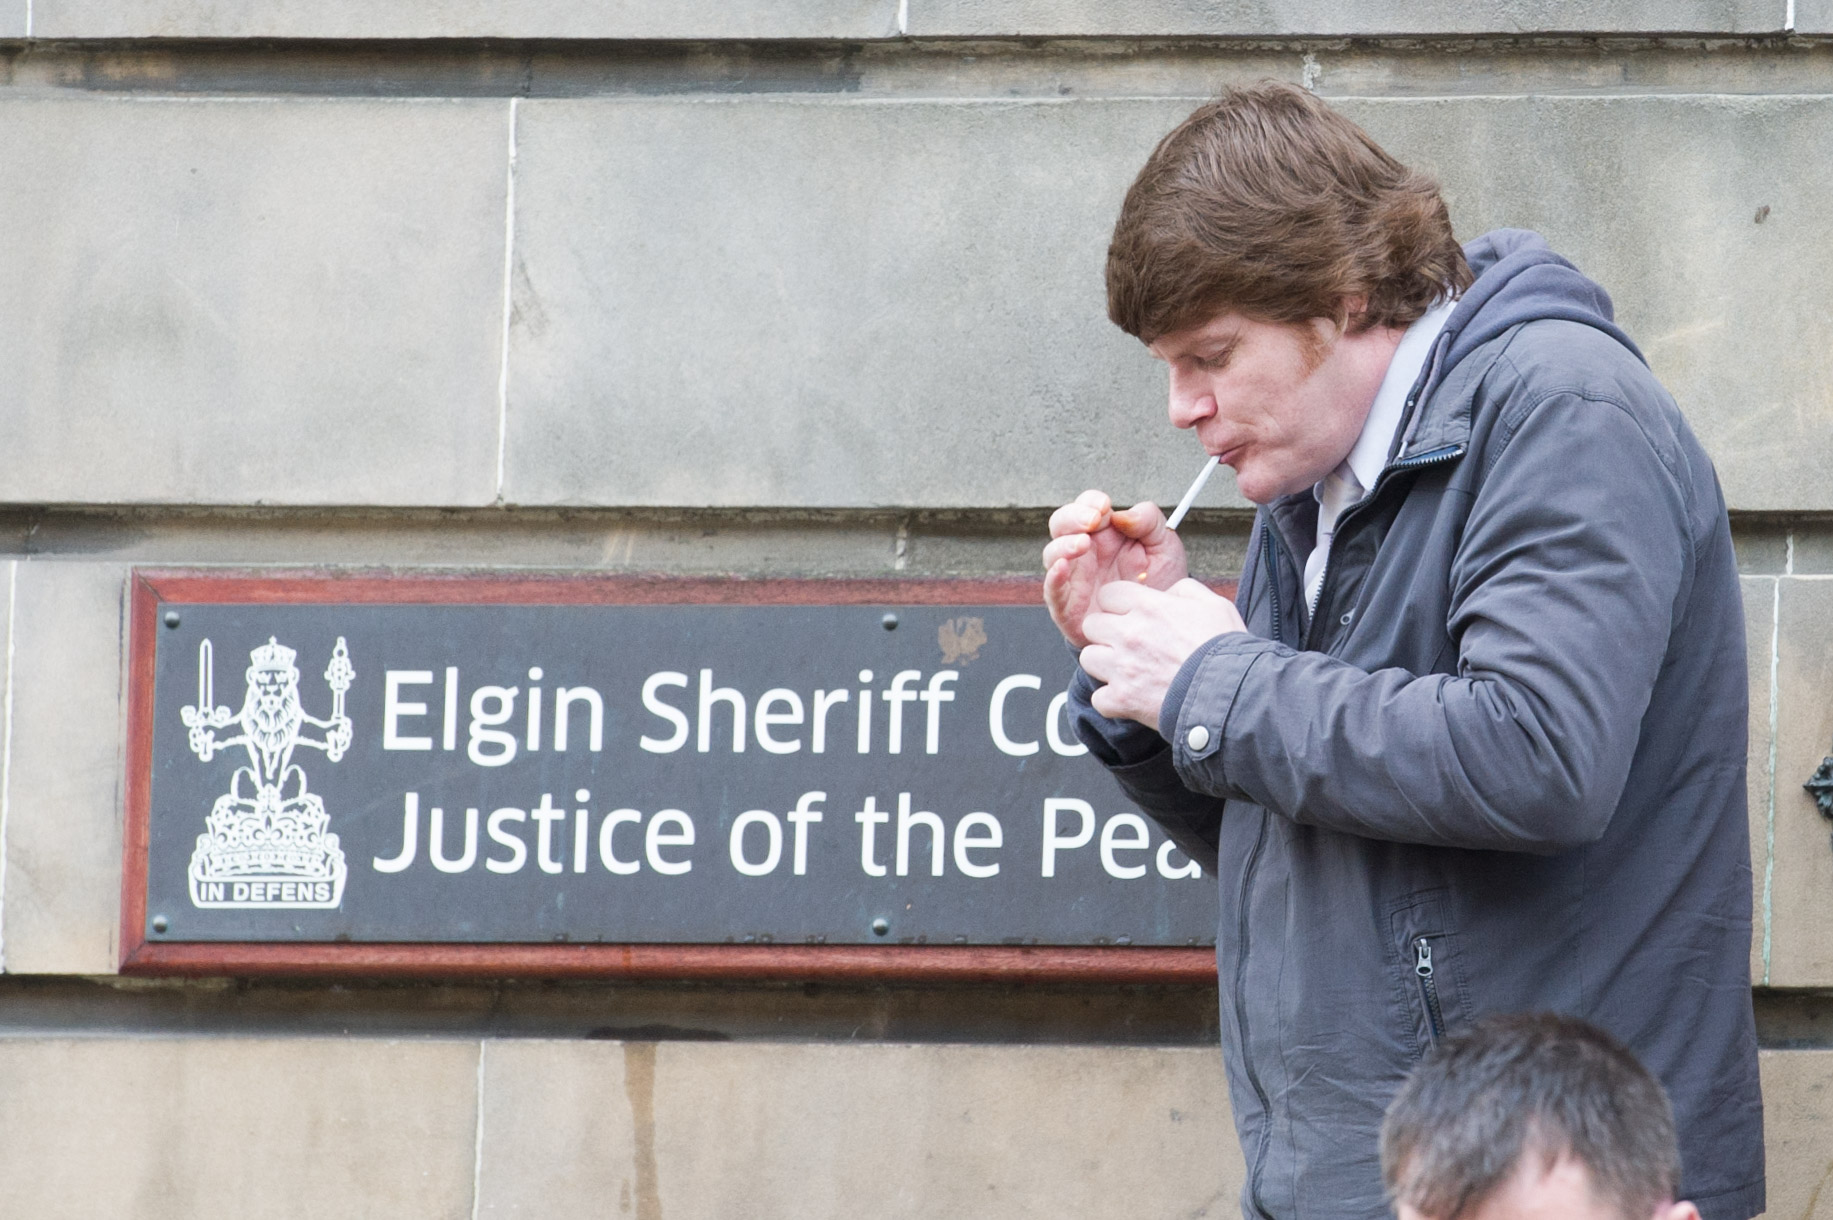 Barry Simpson is pictured at Elgin Sheriff Court.